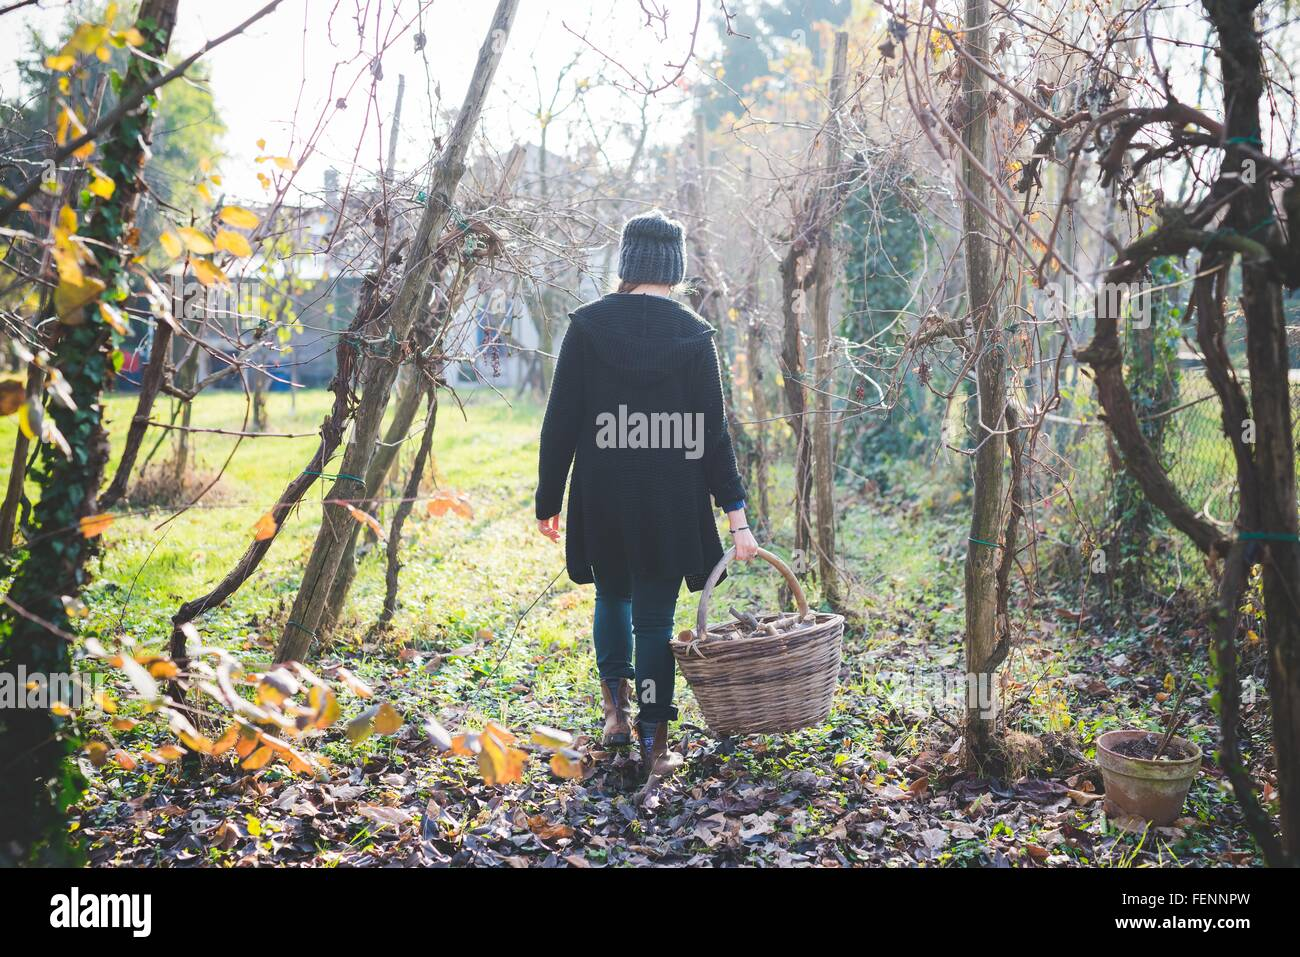 Full length rear view of young woman in garden walking among trees carrying wickerwork basket - Stock Image